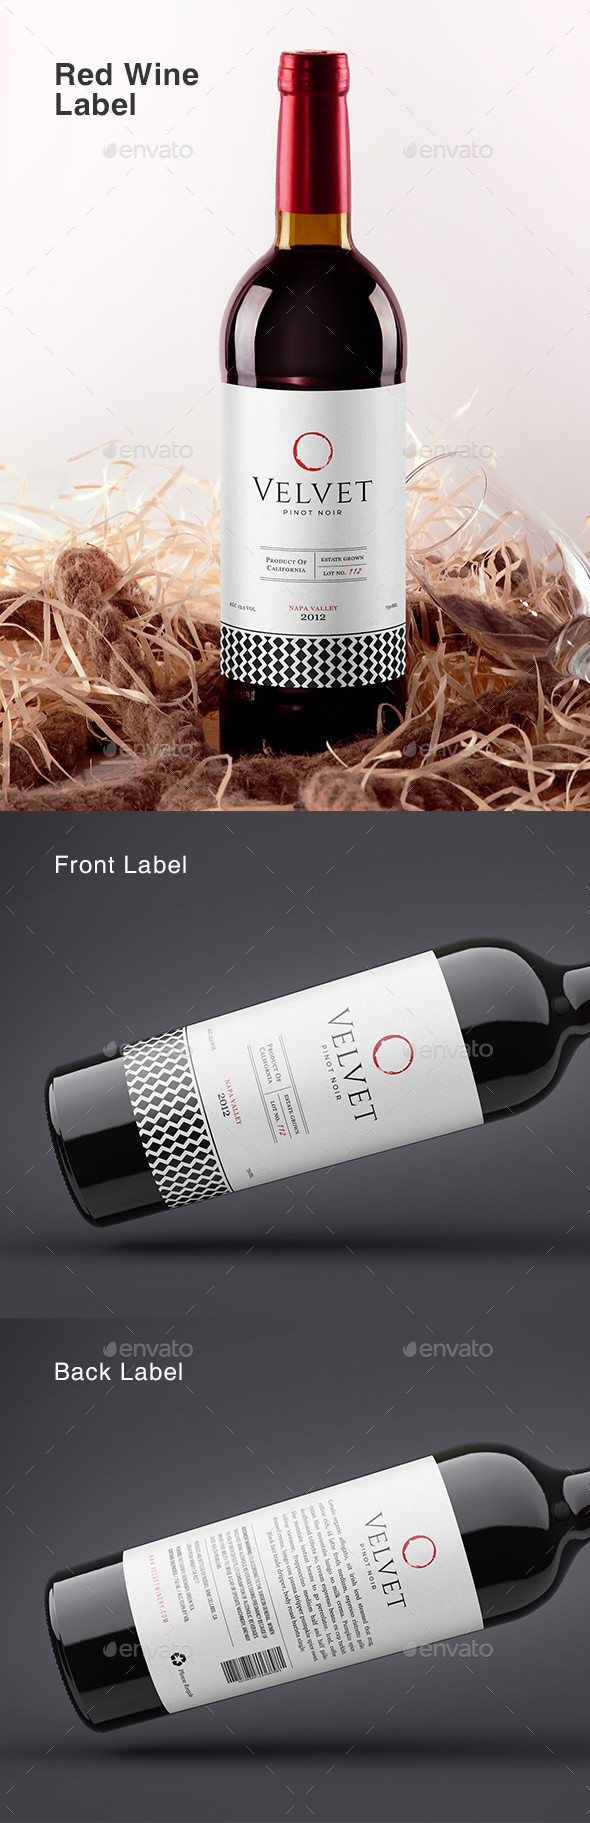 Wine Bottle Label Template